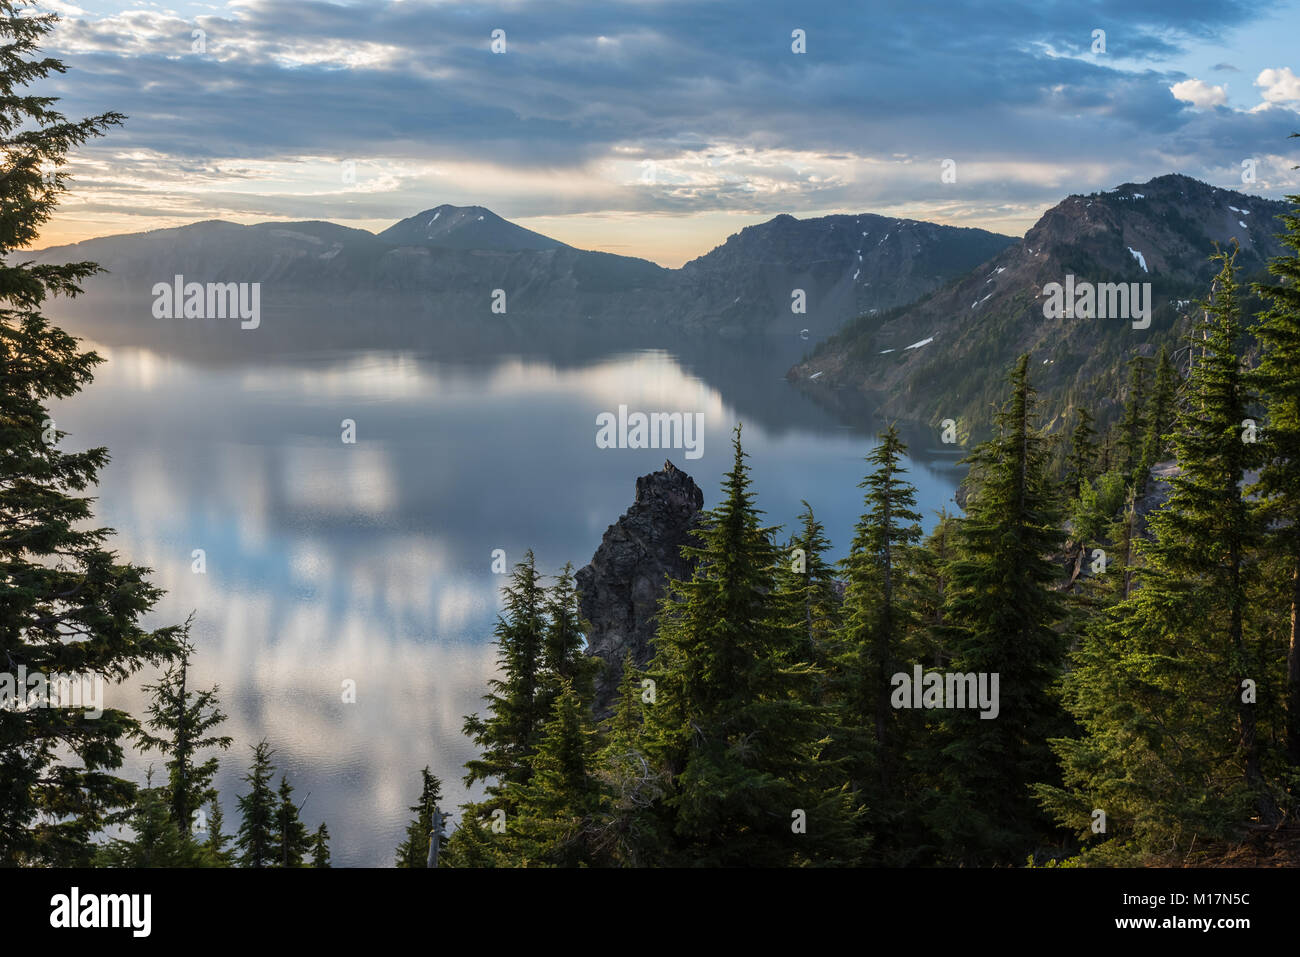 Calm Morning Clouds Reflect in Crater Lake in Oregon - Stock Image